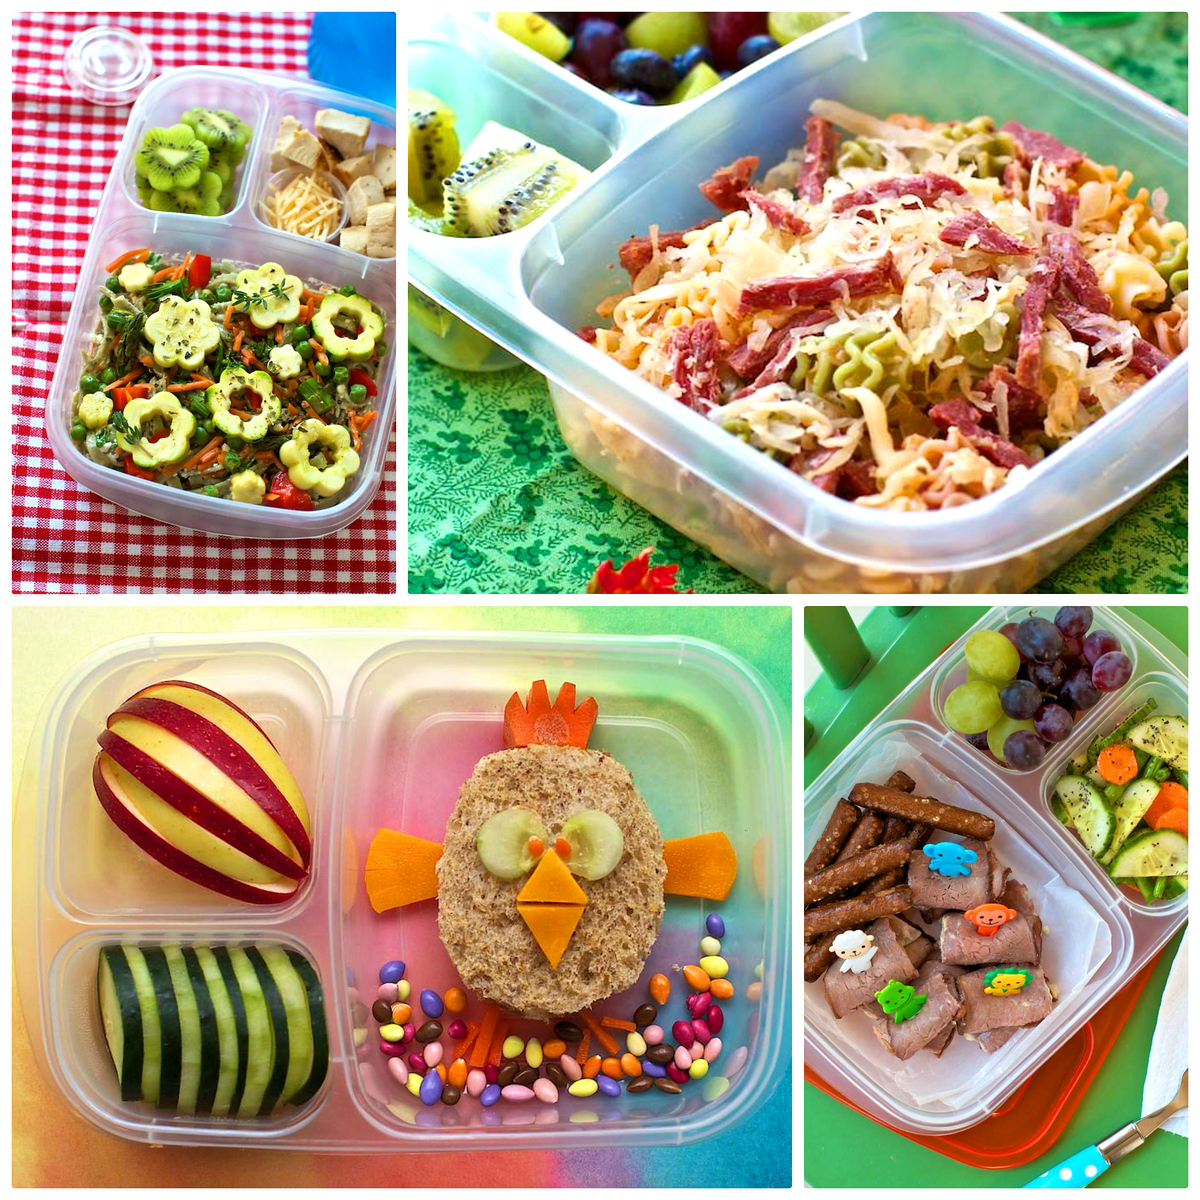 examples of lunch recipes from cookbook